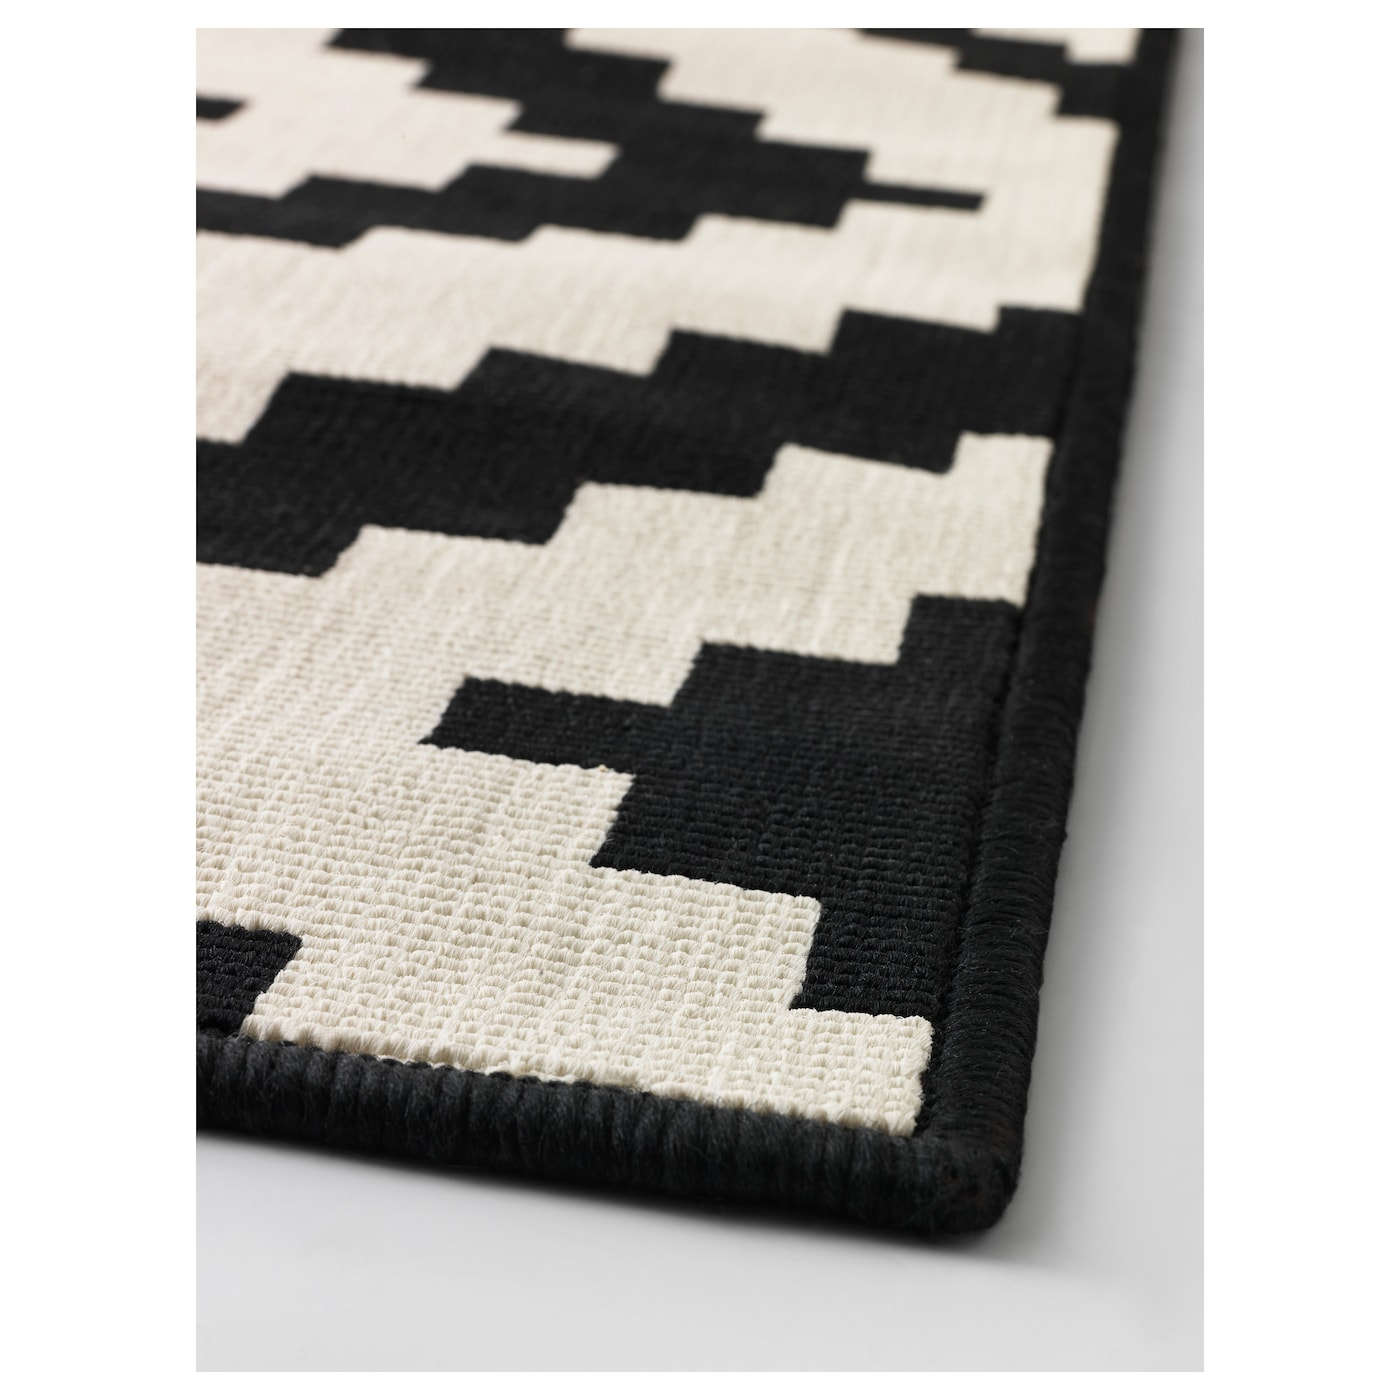 lappljung ruta tapis poils ras blanc noir 200 x 300 cm ikea. Black Bedroom Furniture Sets. Home Design Ideas